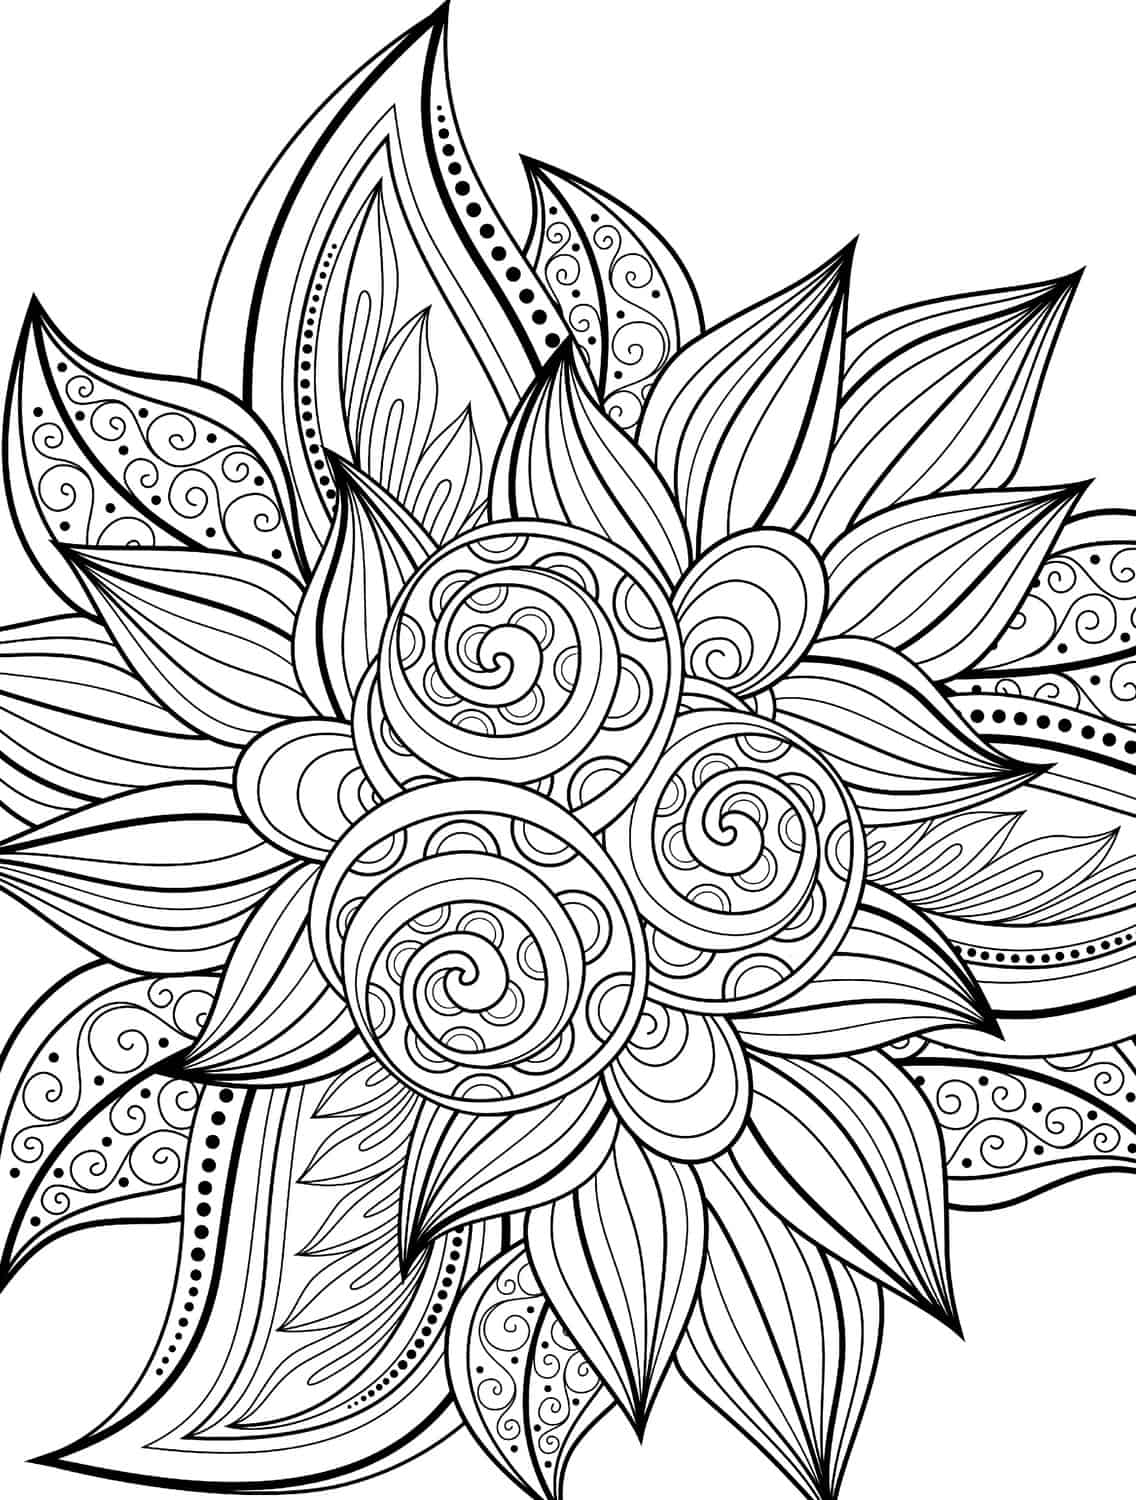 full size coloring sheets 10 toothy adult coloring pages printable off the cusp sheets size full coloring